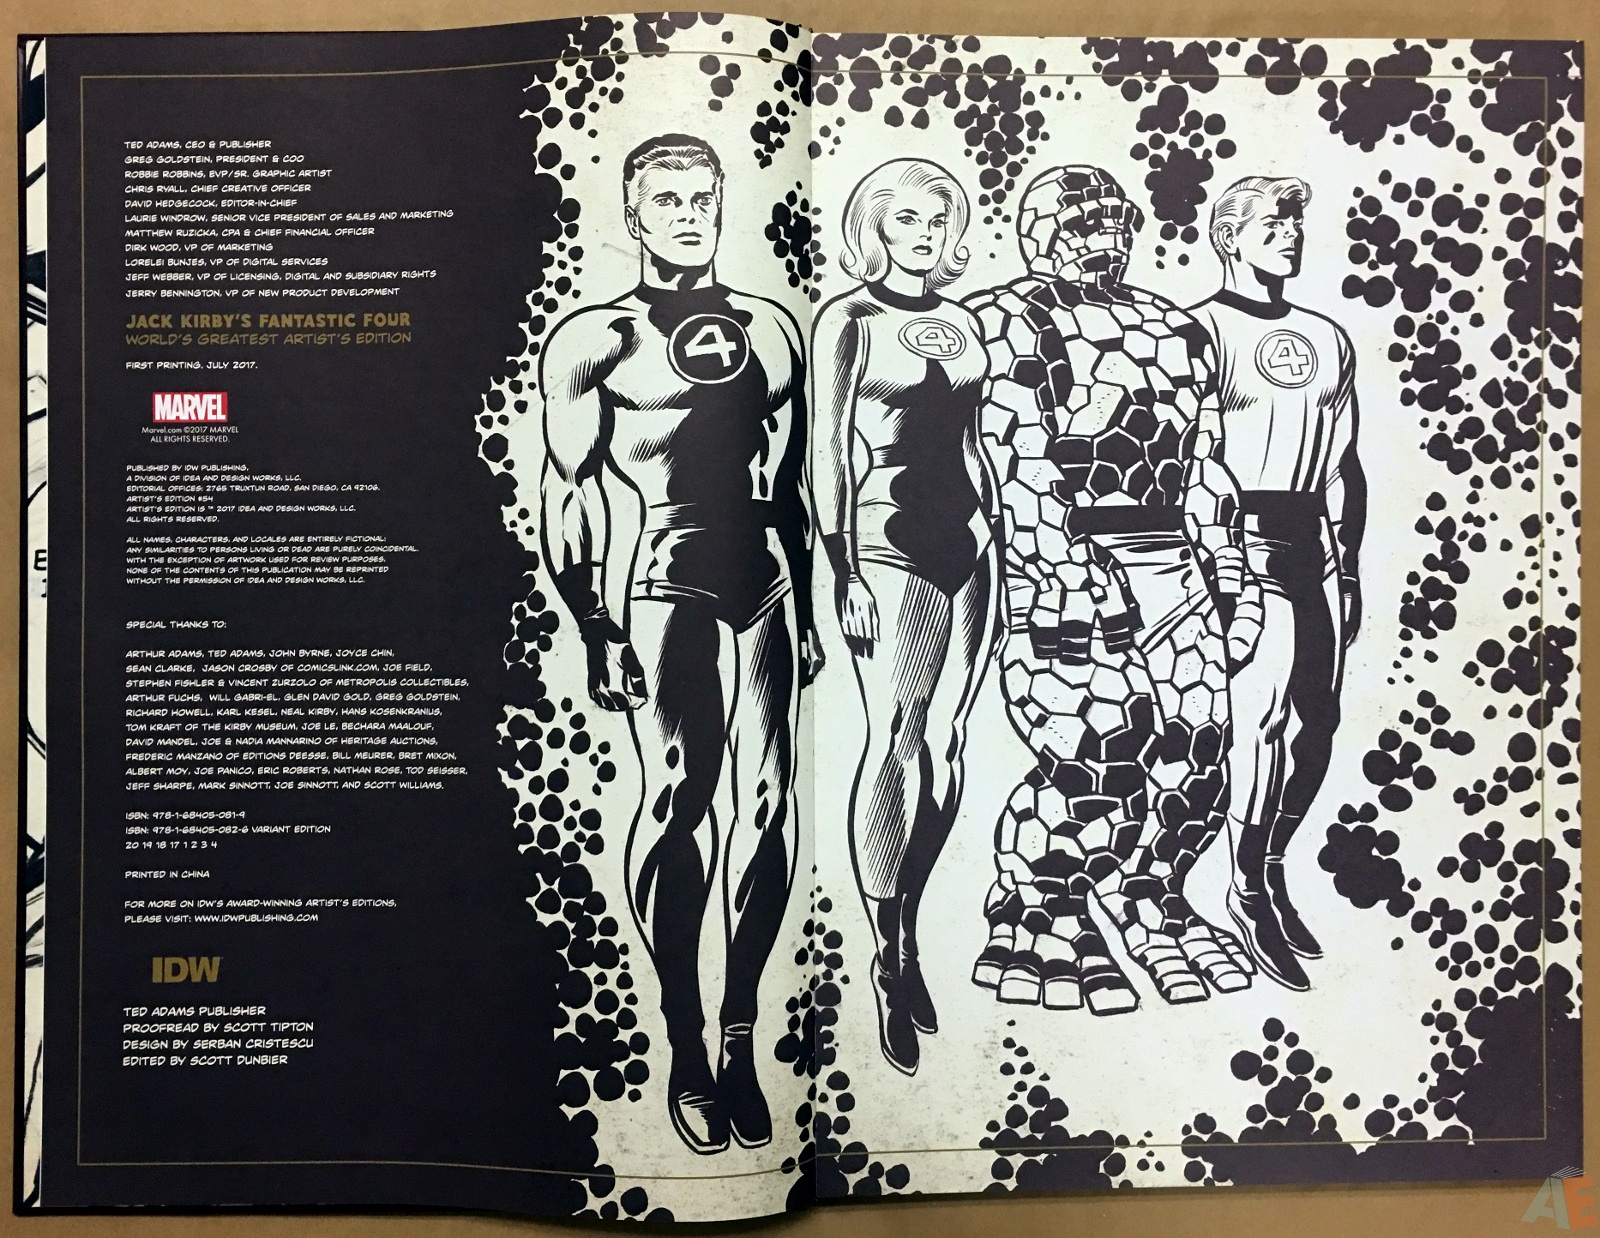 Jack Kirby's Fantastic Four The World's Greatest Artist's Edition 4